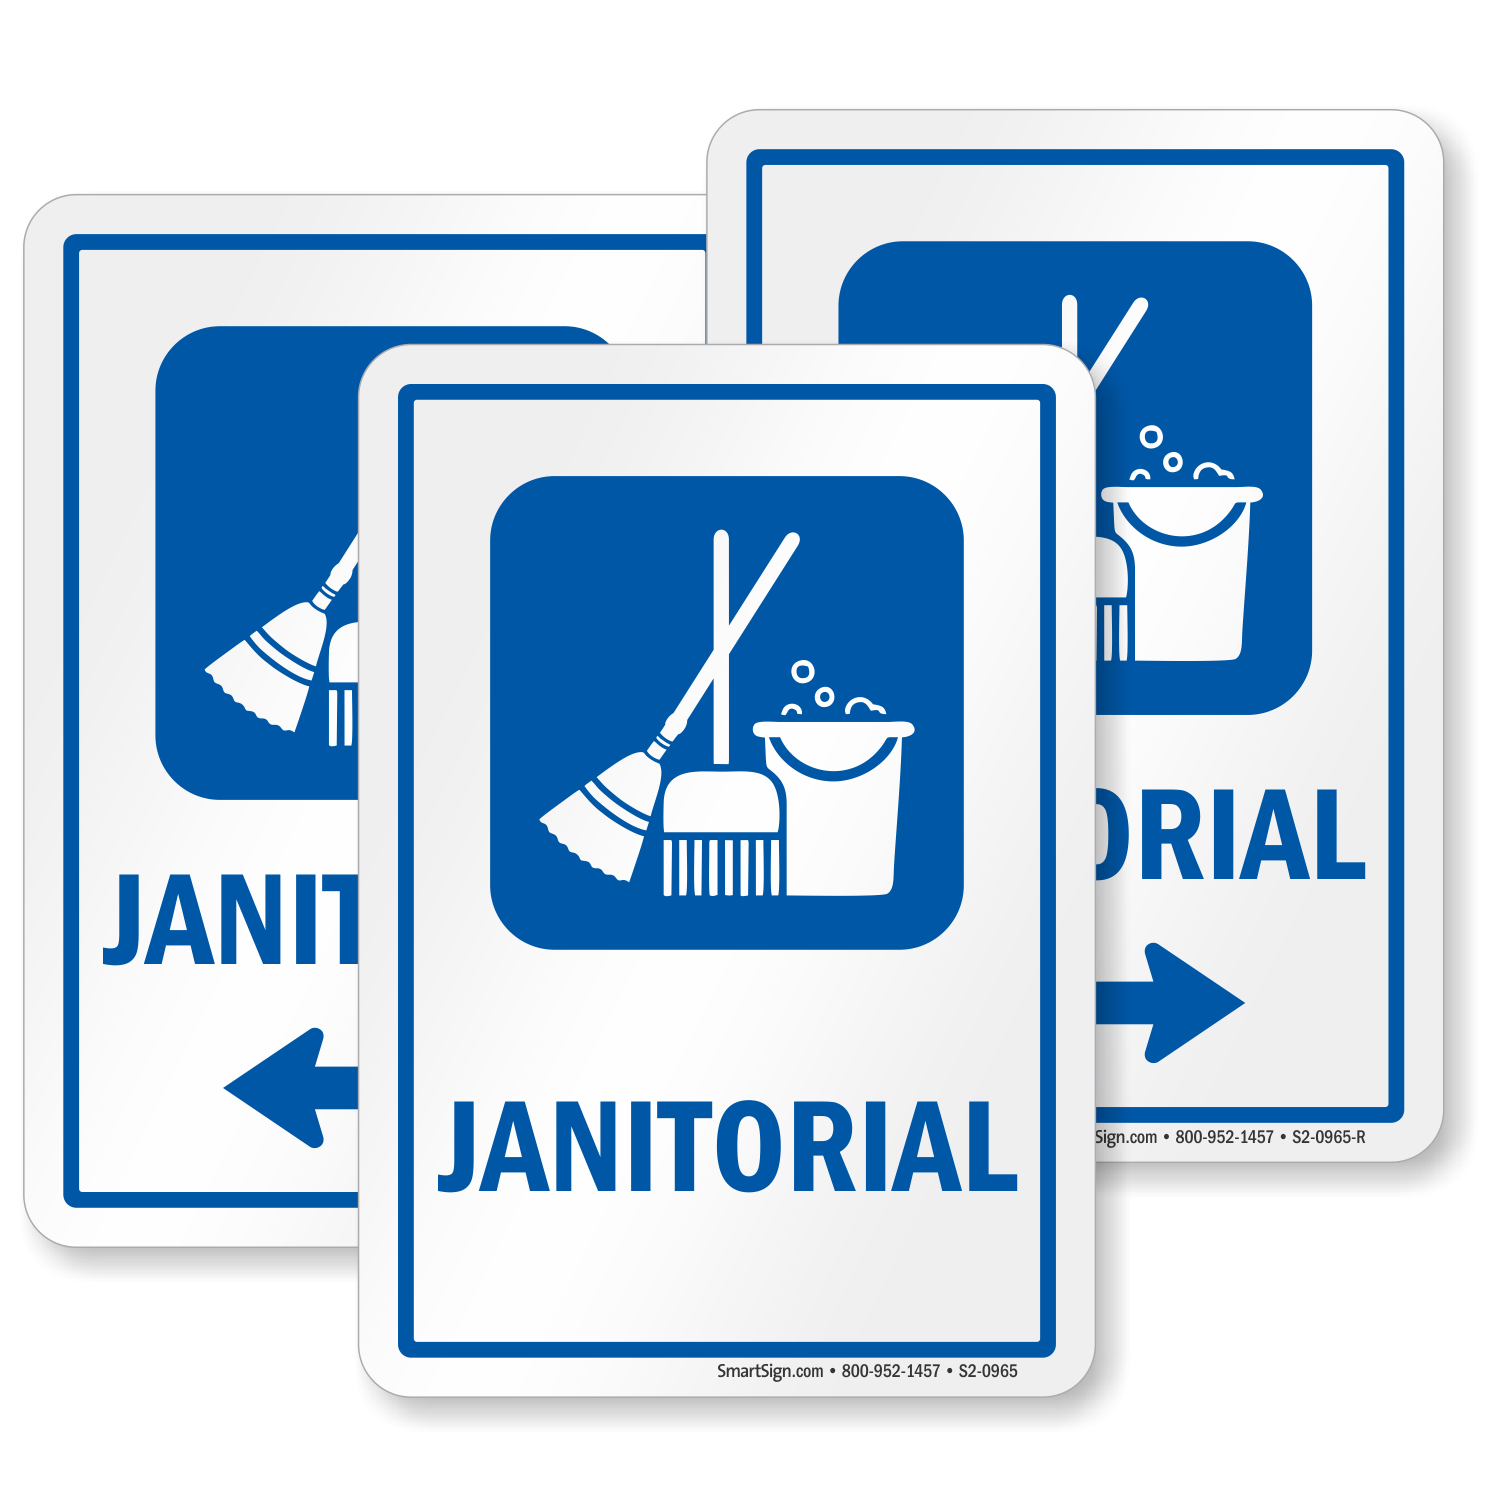 Janitorial Sign Maintenance Equipment Symbol Sku S2 0965